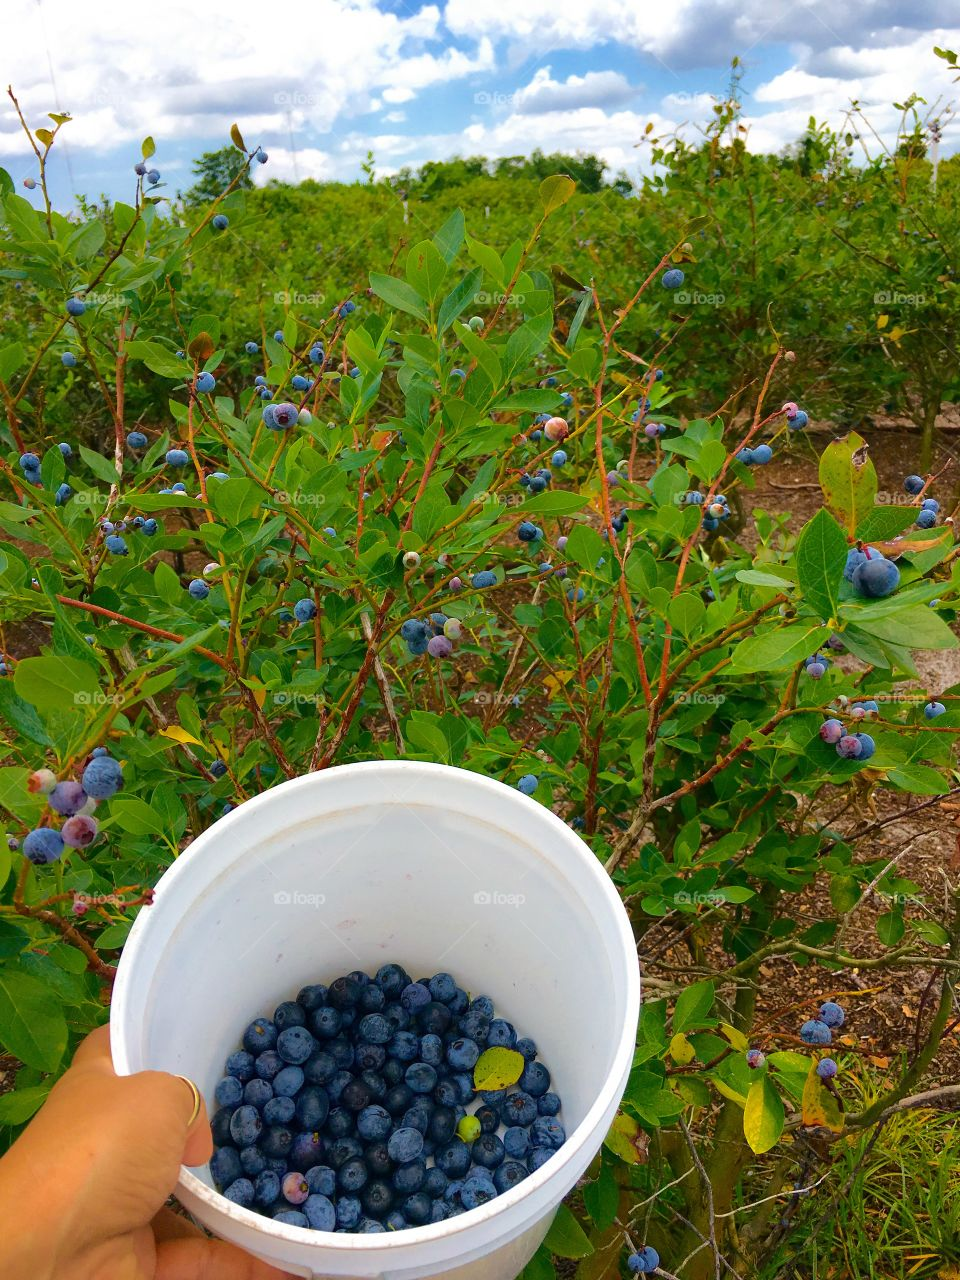 Person collecting blueberries in container